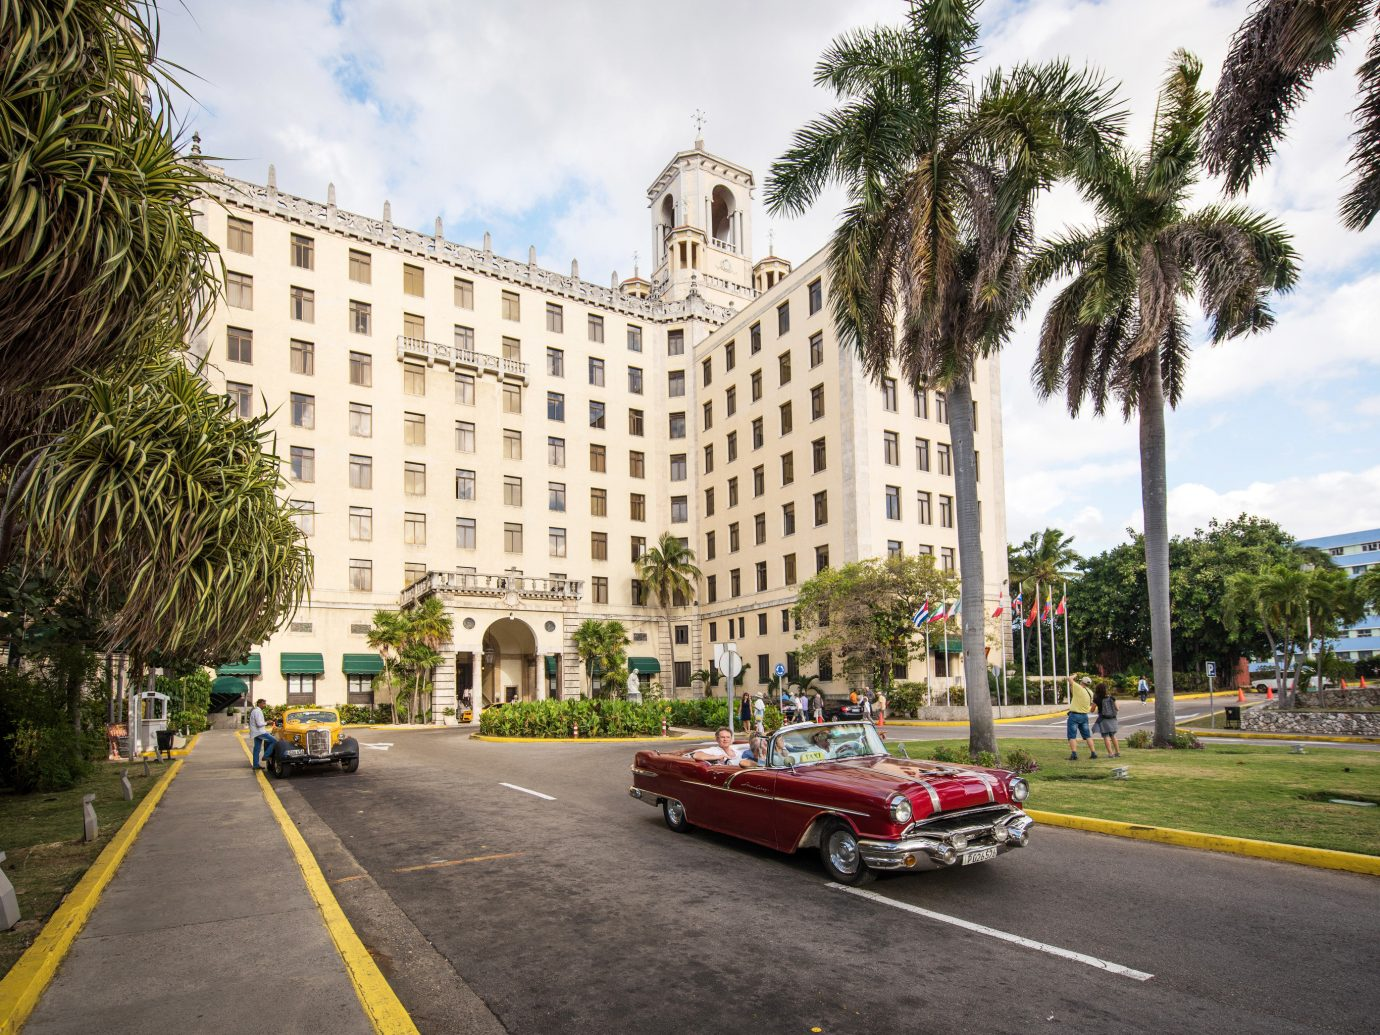 Hotels Luxury Travel car land vehicle plant woody plant tree sky palm tree arecales urban area City infrastructure metropolitan area vehicle road Architecture building street neighbourhood residential area Downtown daytime luxury vehicle plaza house real estate metropolis condominium facade compact car sedan mid size car